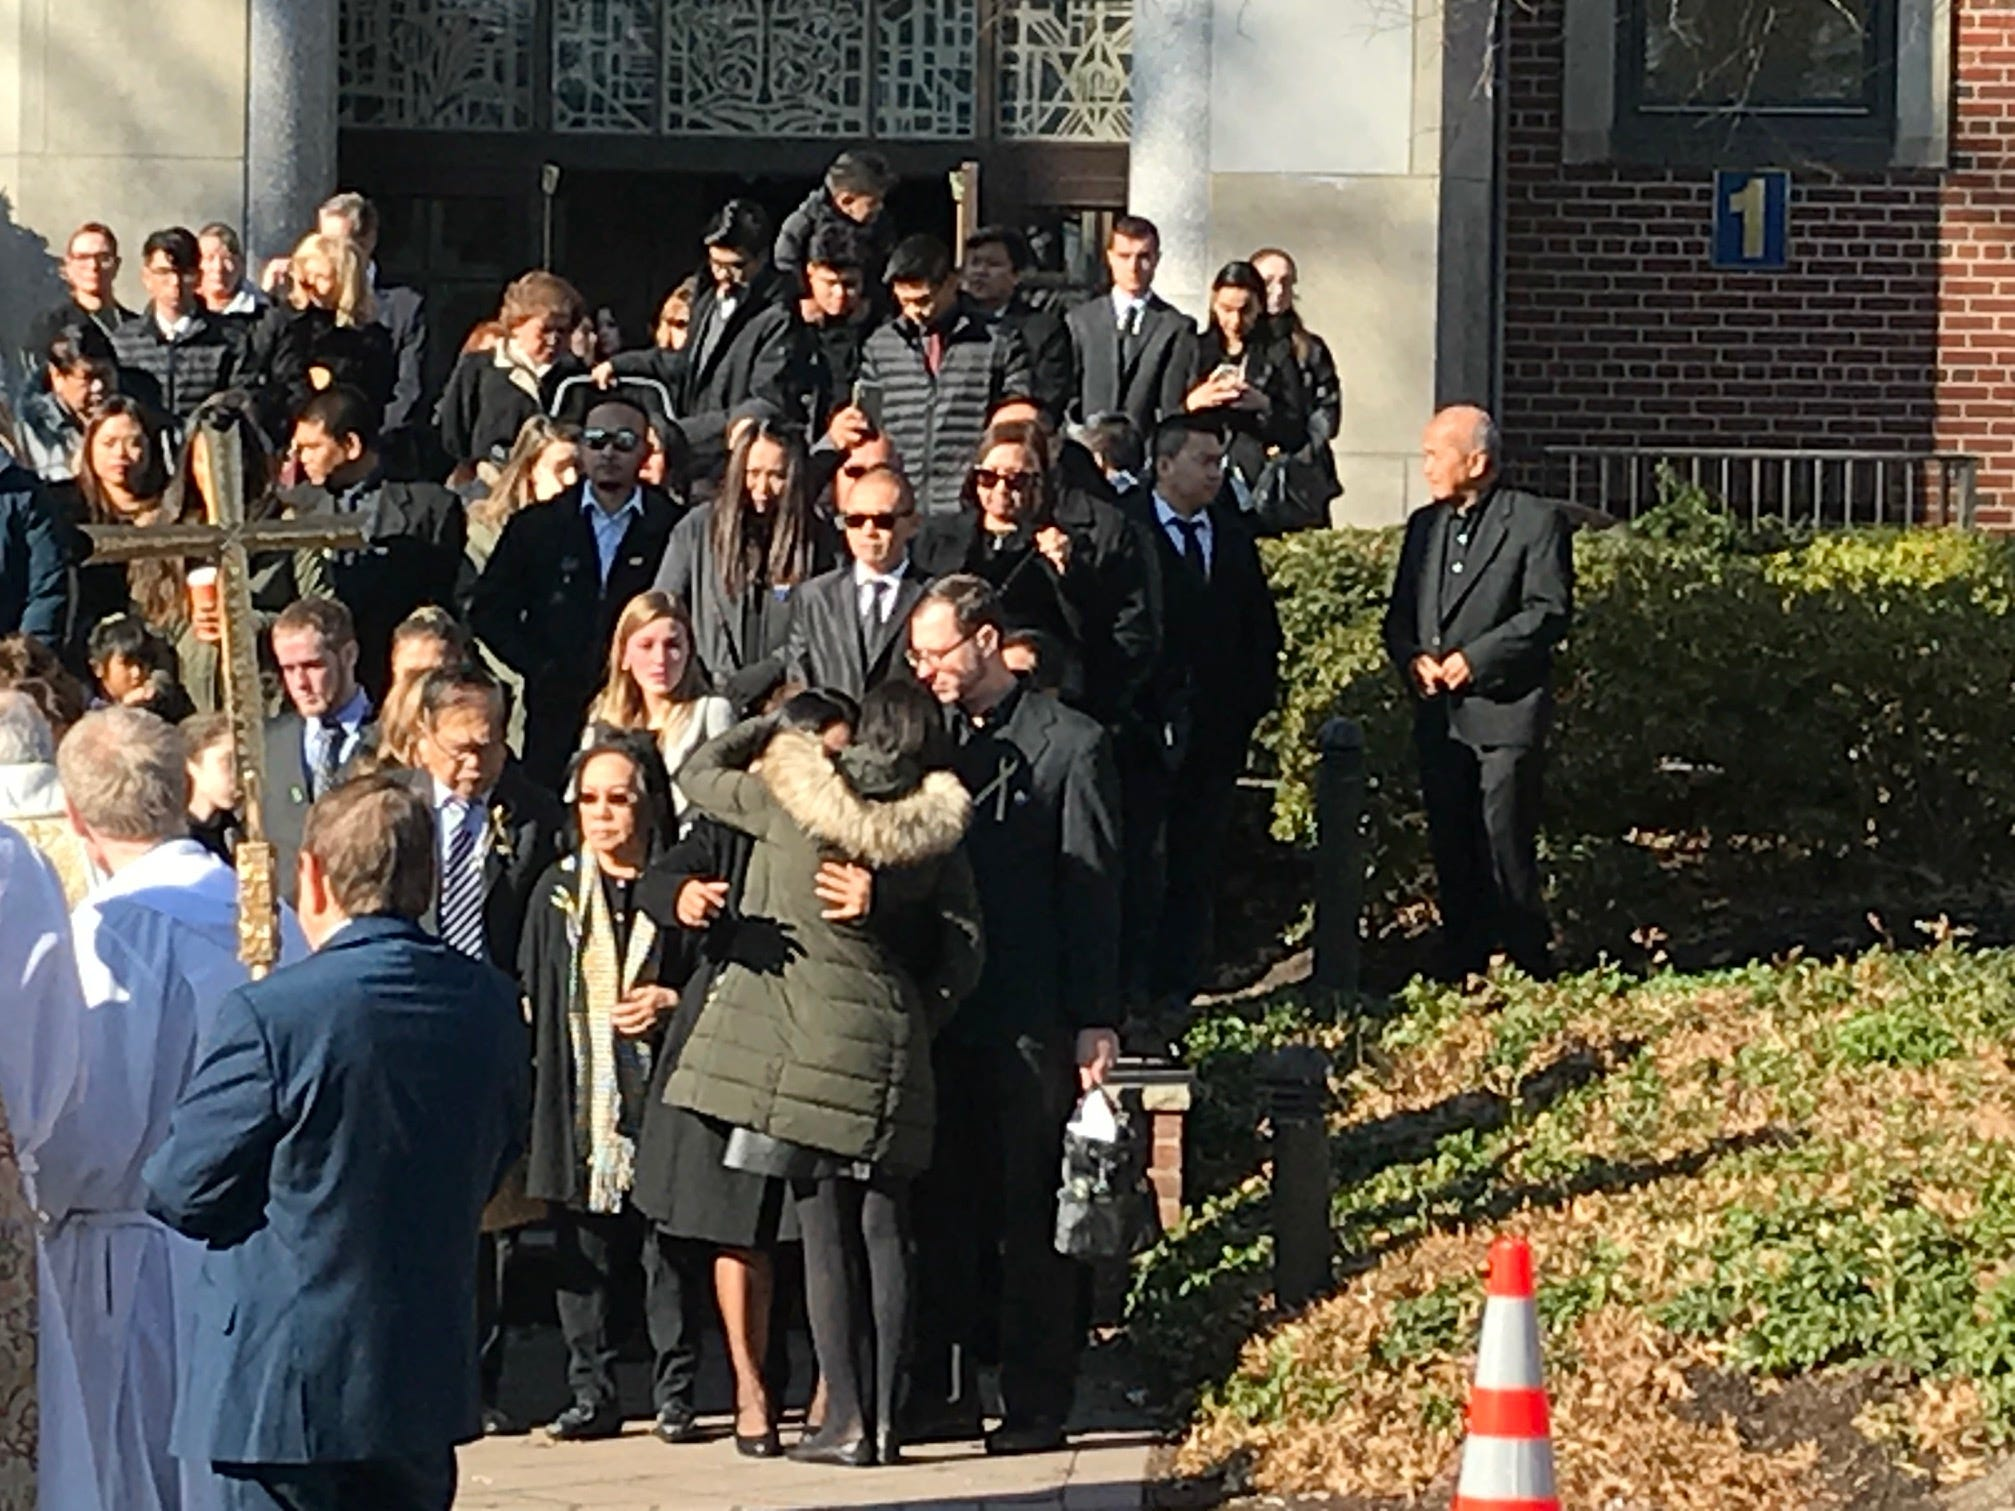 Family members hug following the funeral for Michael Sot, 20, of Clark.